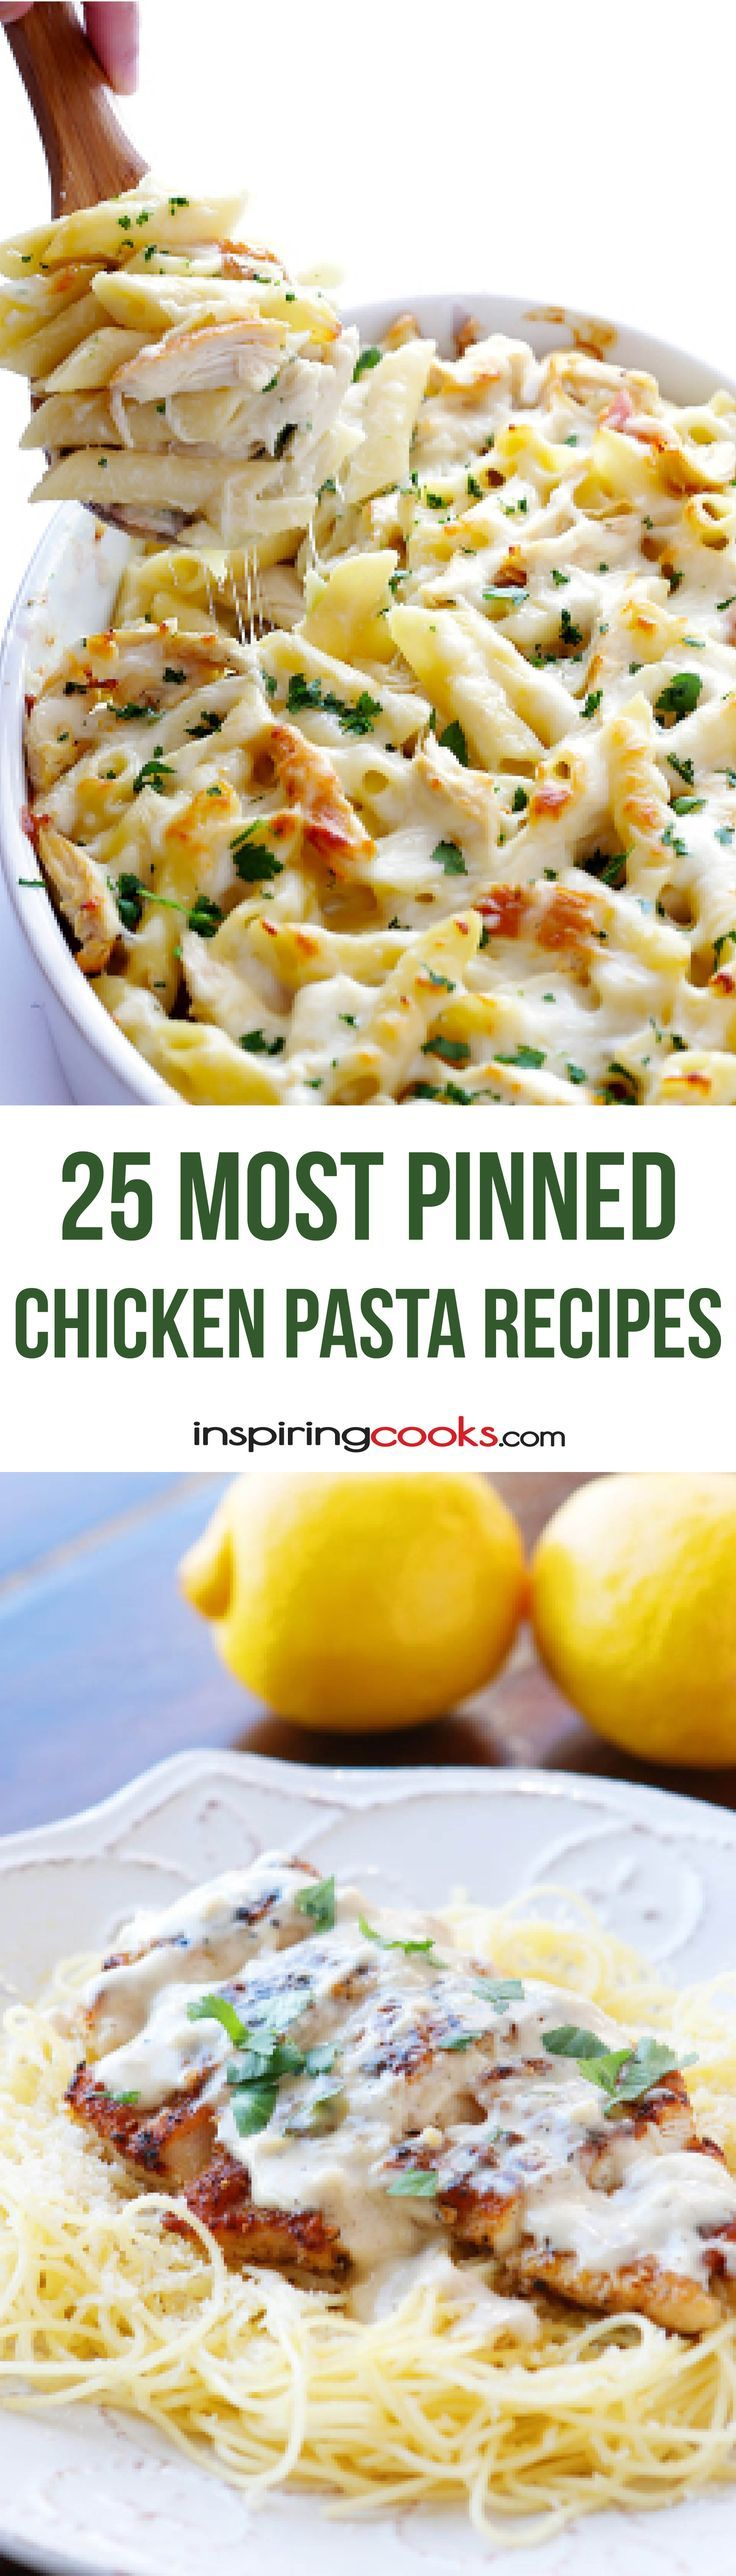 25 Most Pinned Chicken Pasta Recipes – Best Cheap & Easy Recipes. Each of these recipes has been pinned at least 50,000 times. I want to try them all!